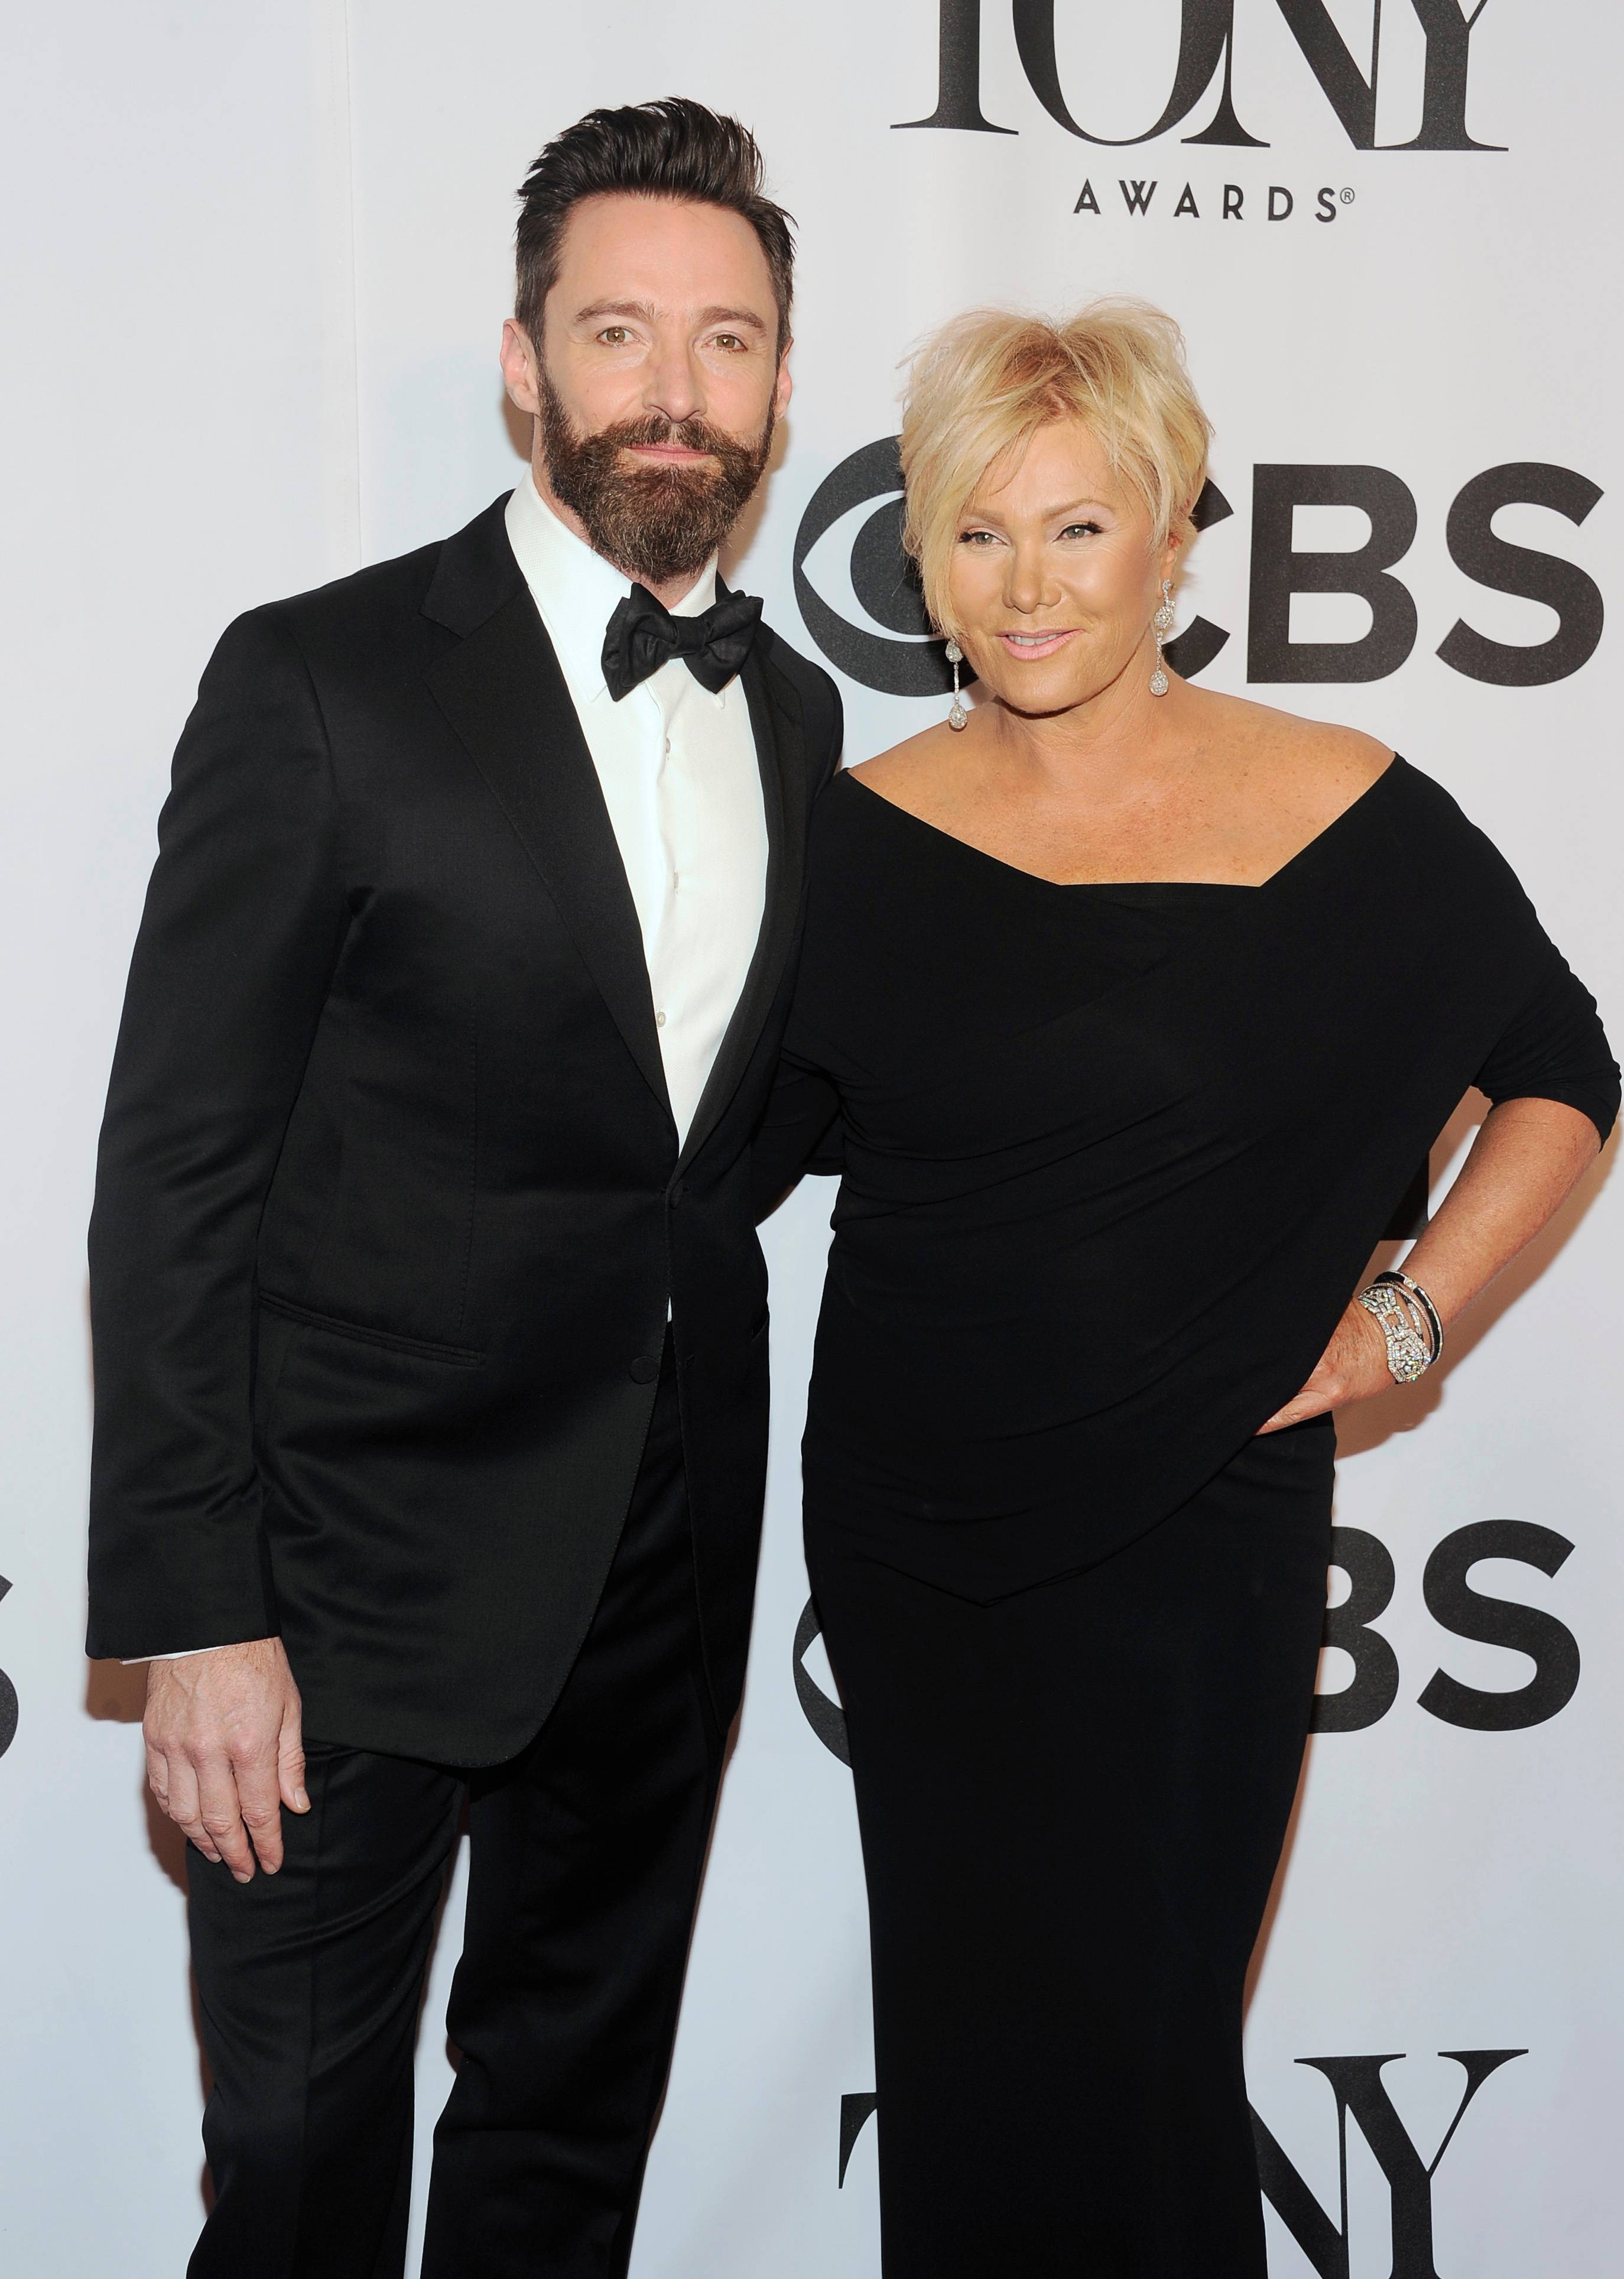 Tony host Hugh Jackman and his wife, Deborra-Lee Furness, arrive at the 68th annual Tony Awards at Radio City Music Hall on Sunday.